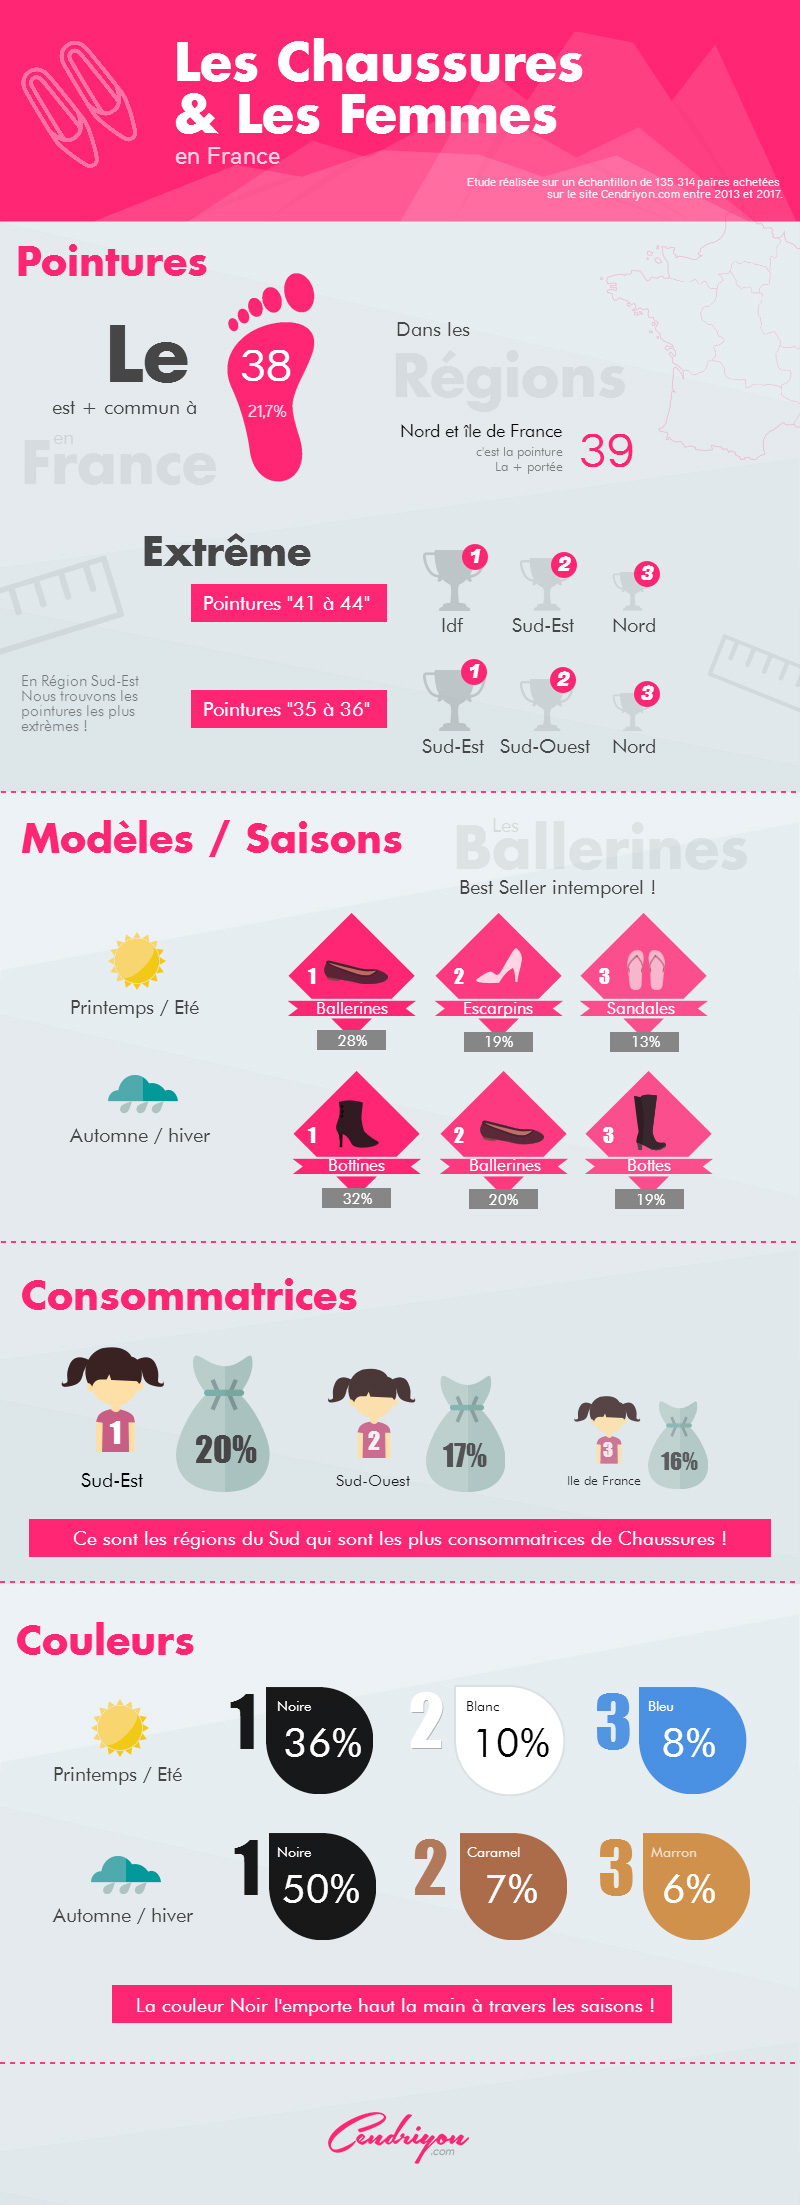 infographie_Chaussures